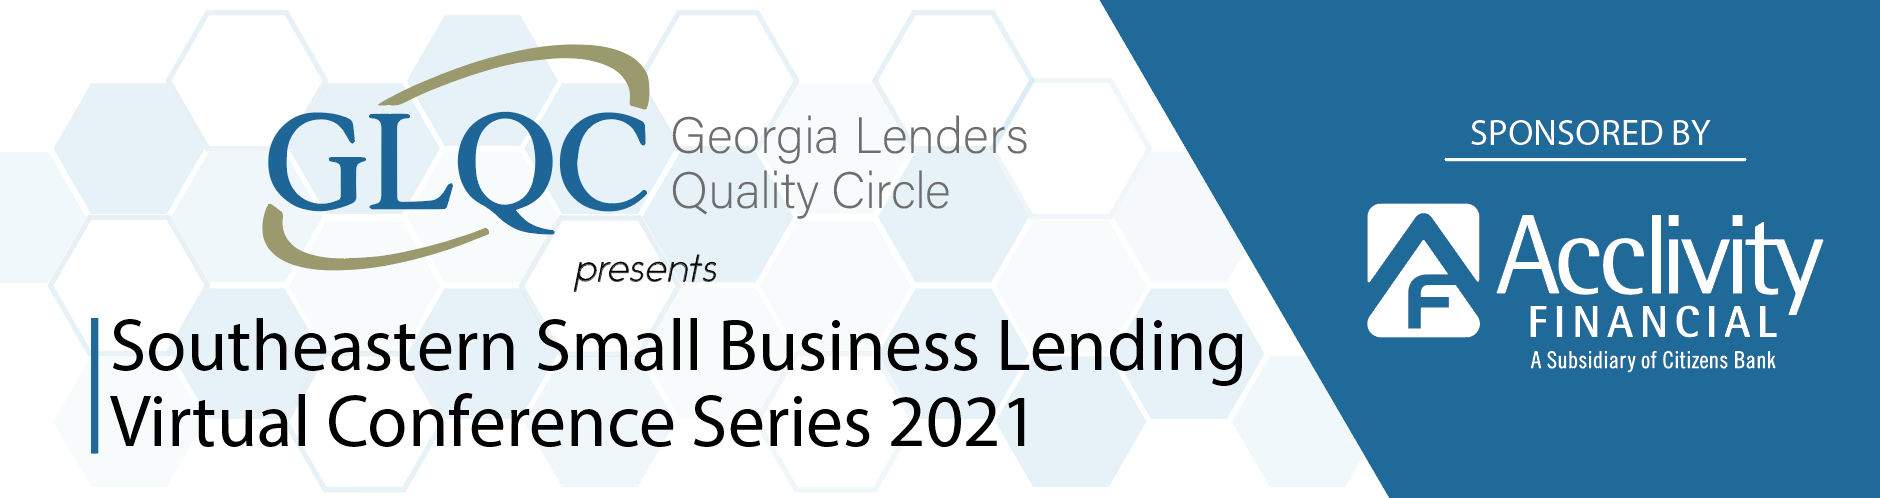 Southeastern Small Business Lenders 2021